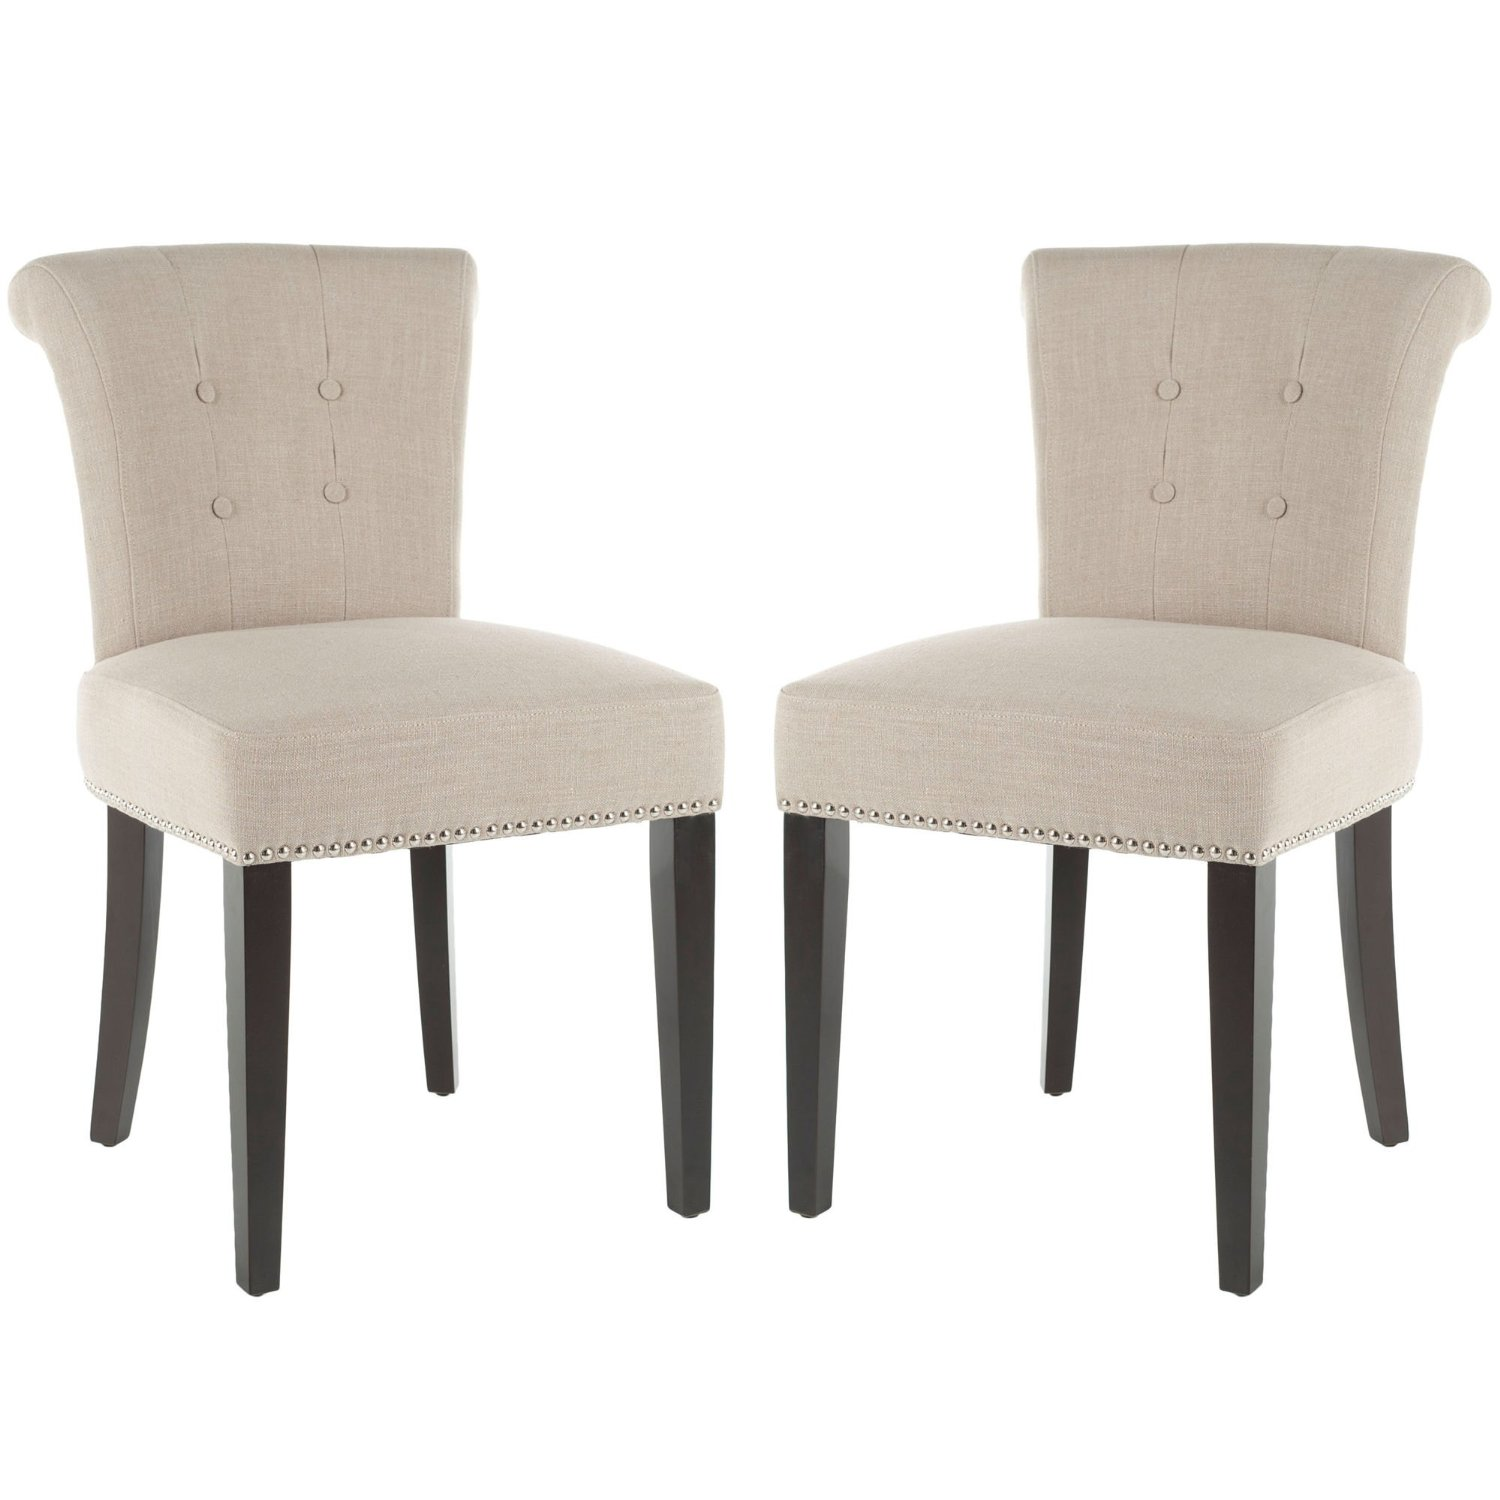 Peachy Cheap Linen Nailhead Dining Chairs Find Linen Nailhead Bralicious Painted Fabric Chair Ideas Braliciousco